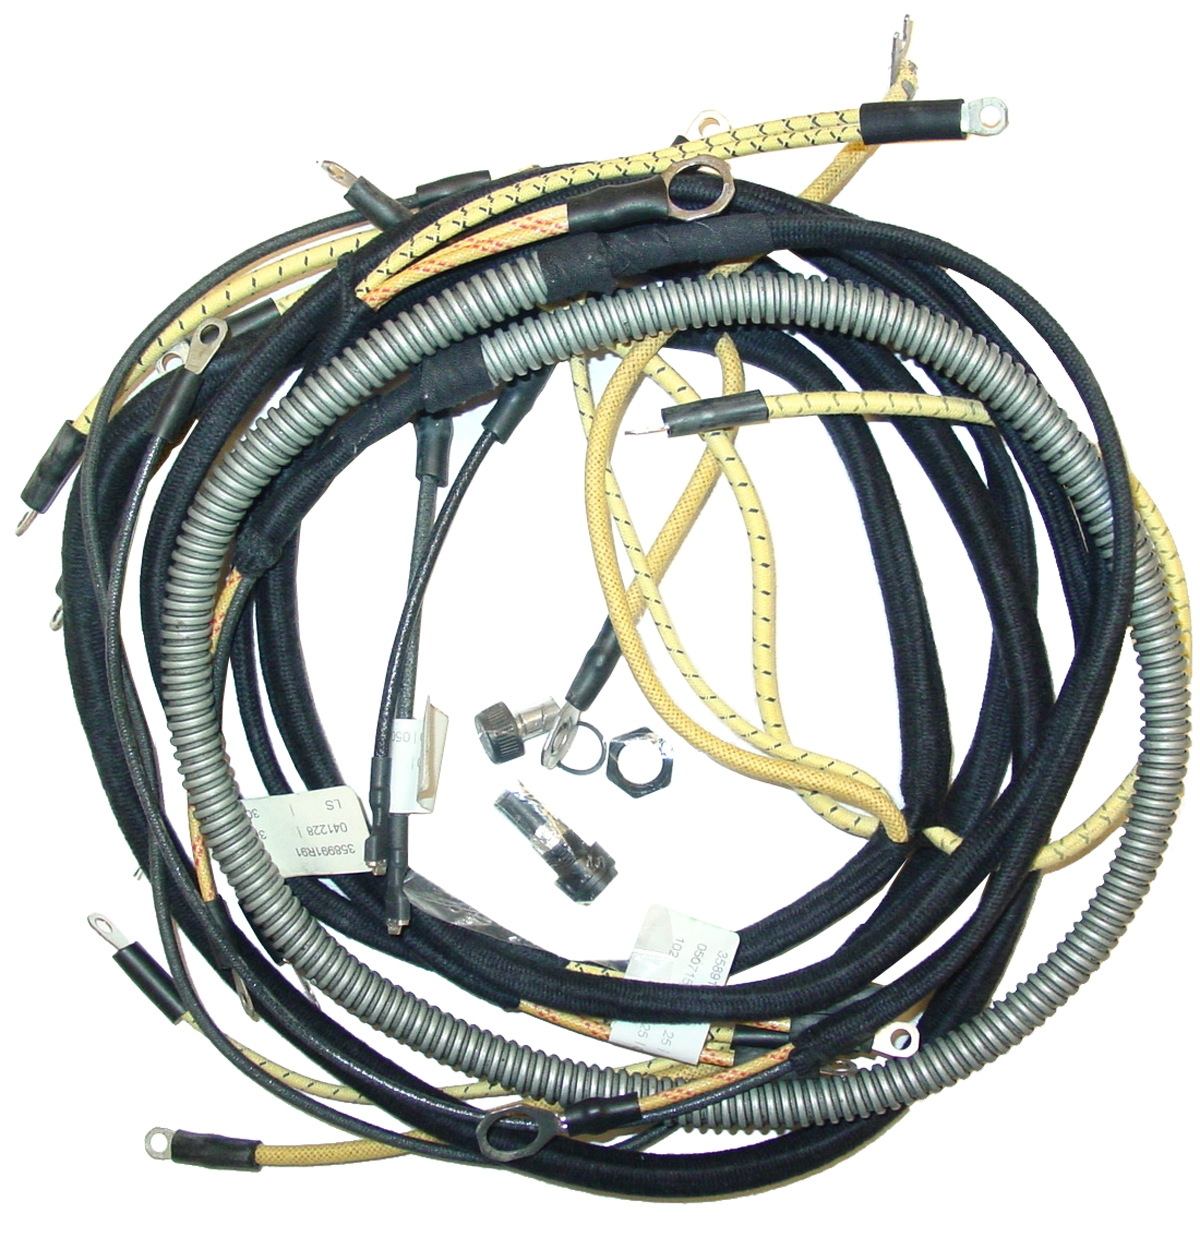 IHS488 wiring harness case ih parts case ih tractor parts Chevy Engine Wiring Harness at bayanpartner.co